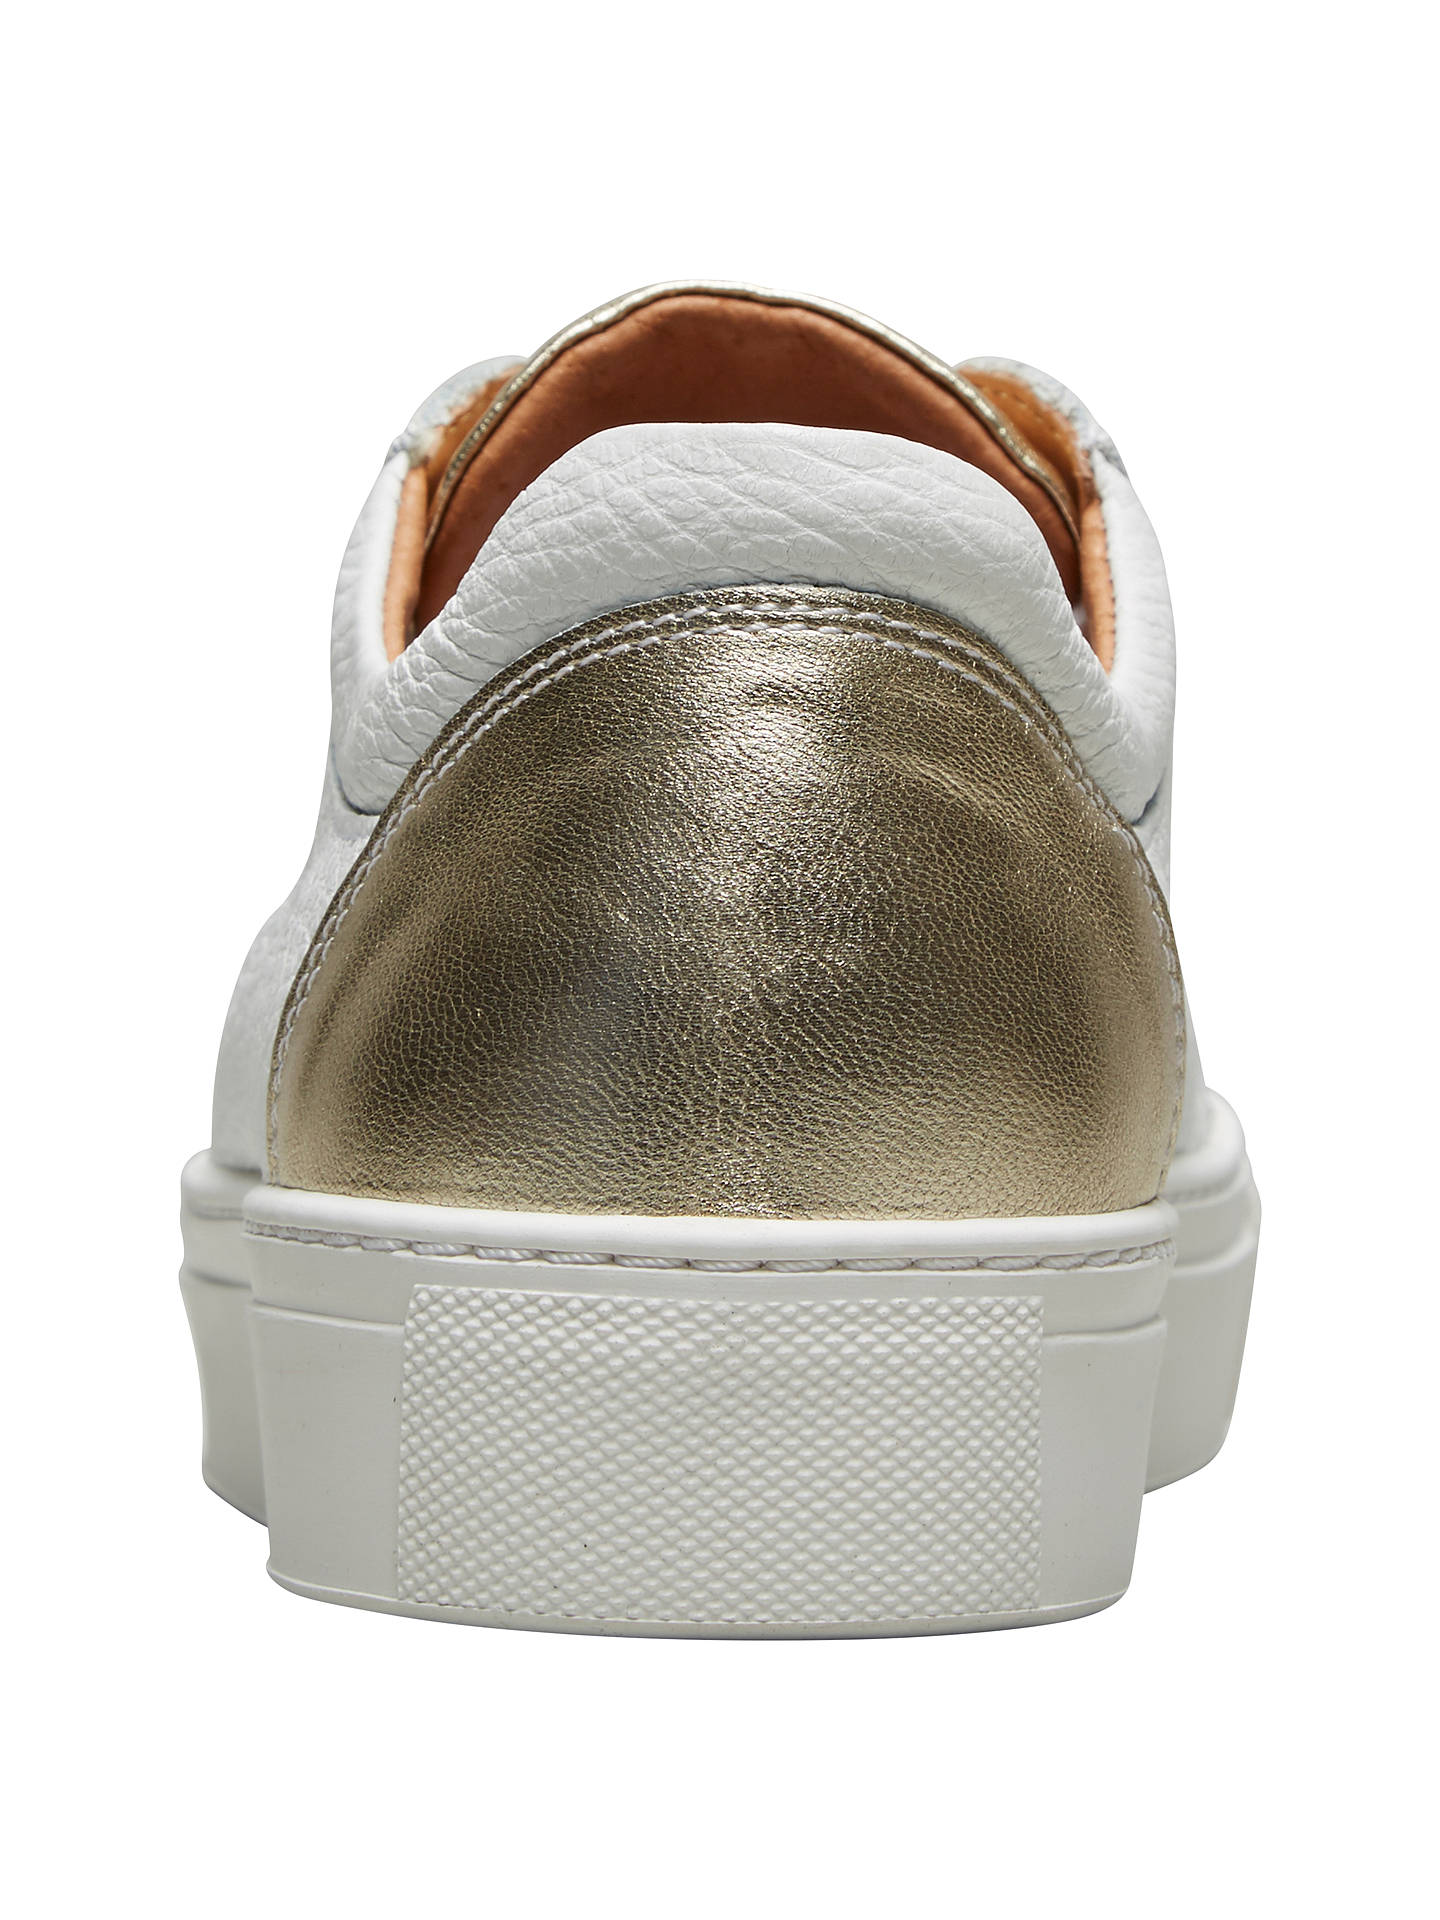 BuySelected Femme Donna Contrast Trainers, White/Gold, 4 Online at johnlewis.com